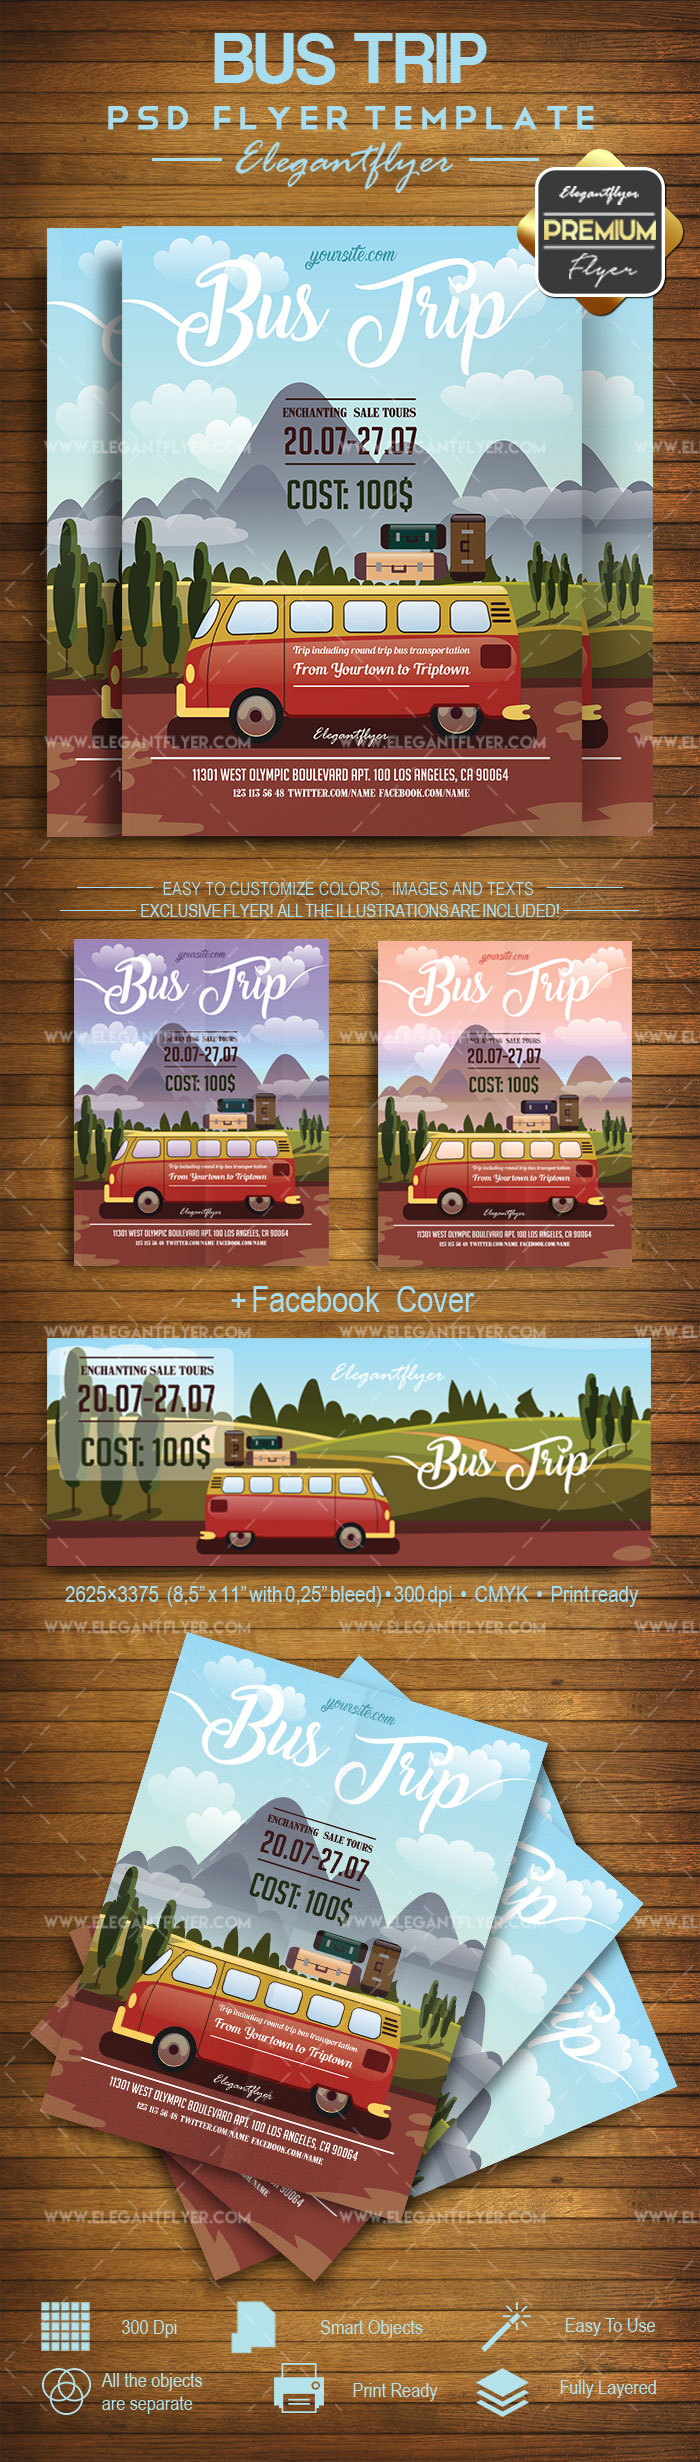 Bus trip flyer psd template facebook cover by elegantflyer bus trip flyer psd template facebook cover pronofoot35fo Choice Image